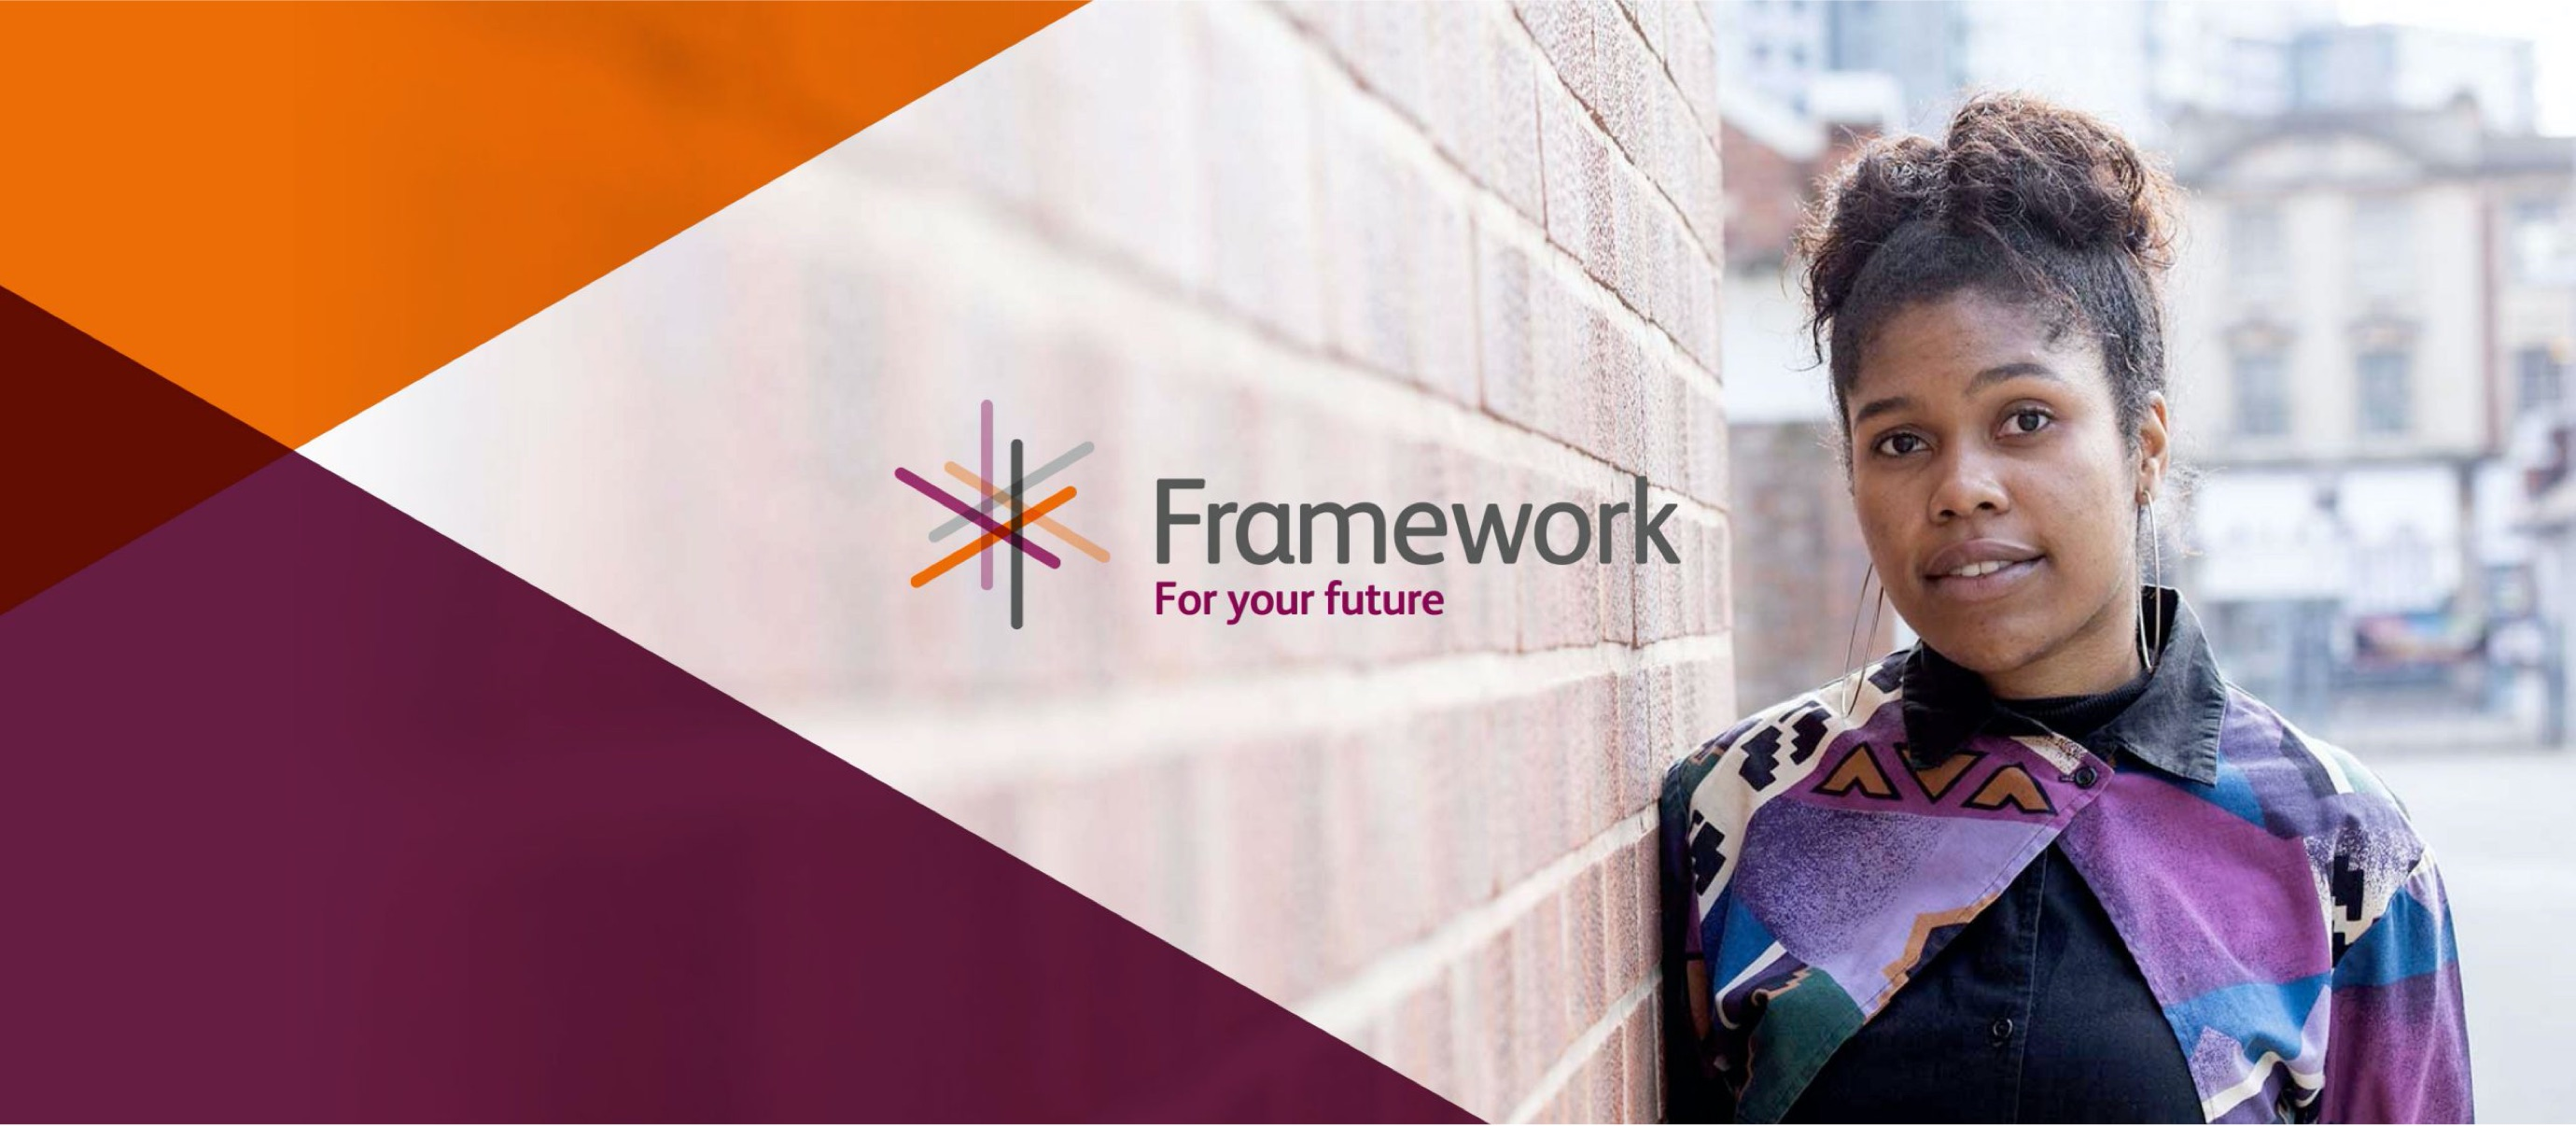 Framework logo overlaying a young lady leaning against a brick wall